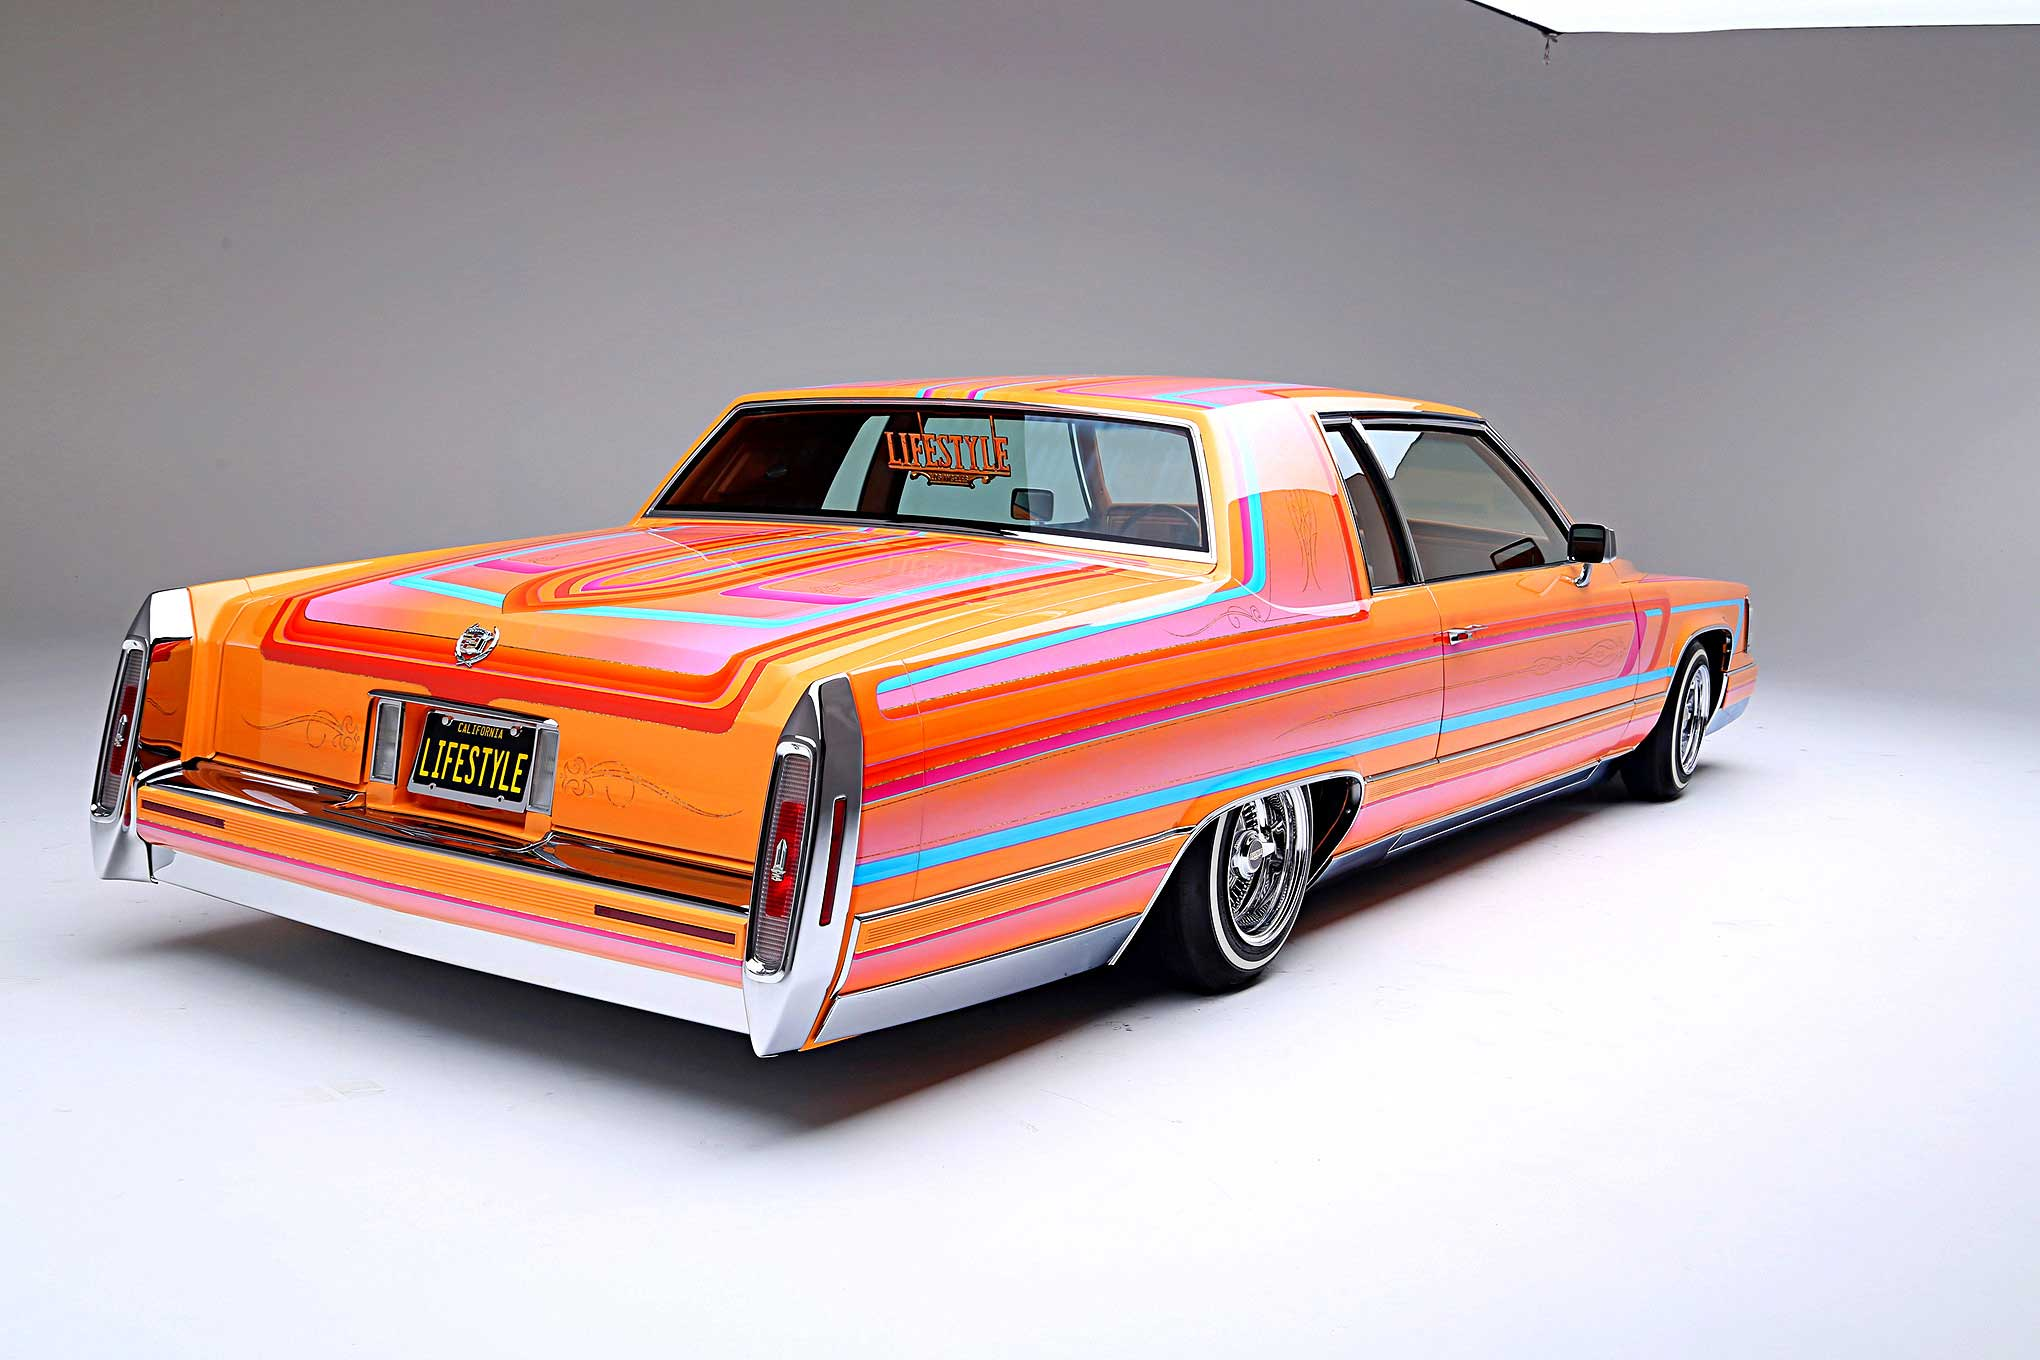 1983 Cadillac Coupe Deville - Born & Bred For This